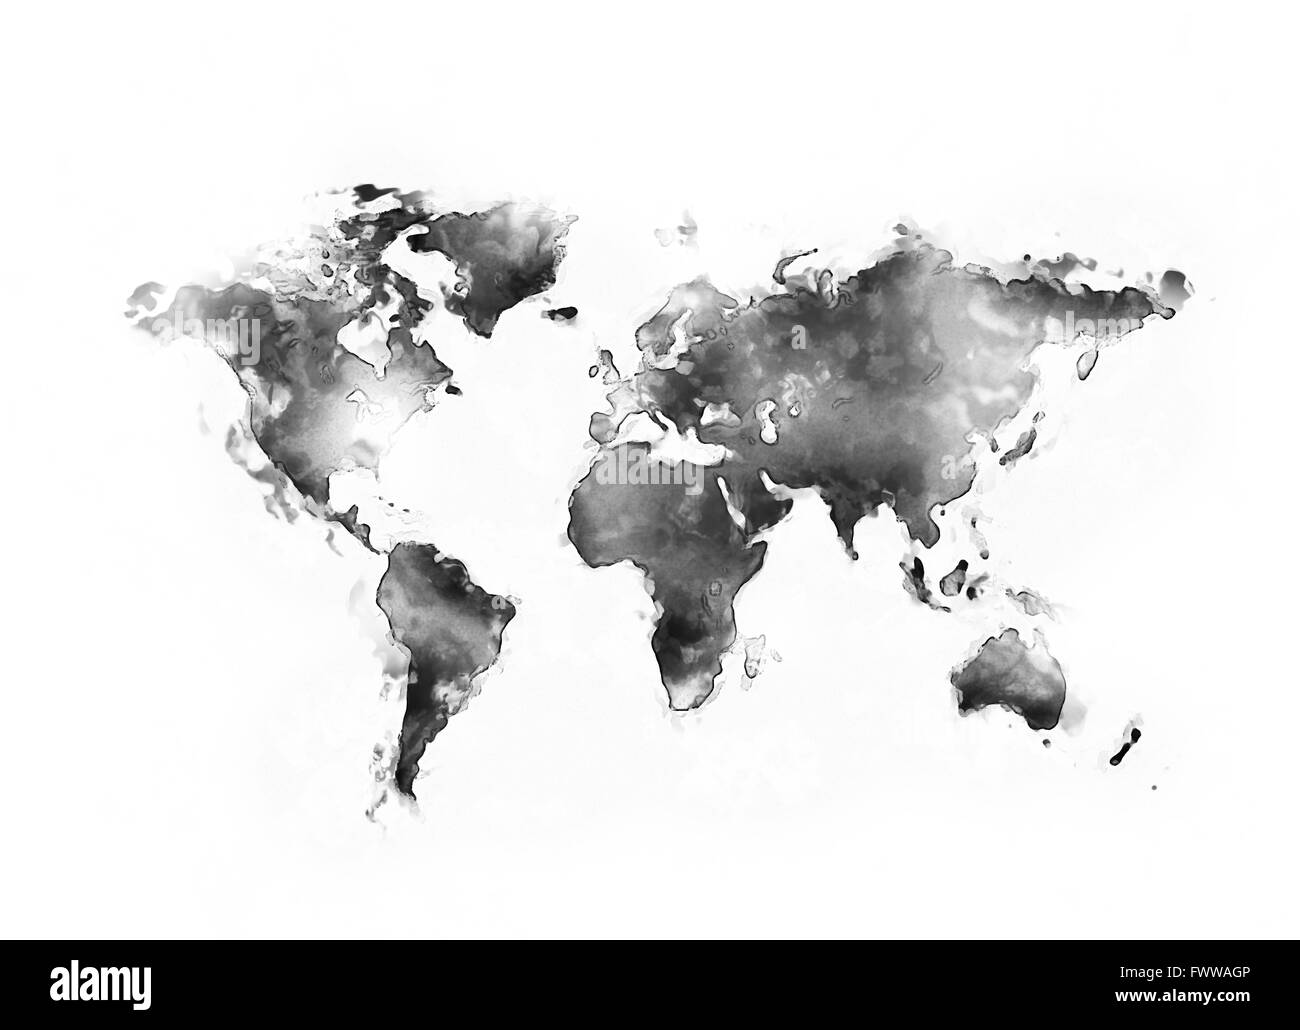 Abstract world map painting o white background stock photo abstract world map painting o white background gumiabroncs Image collections